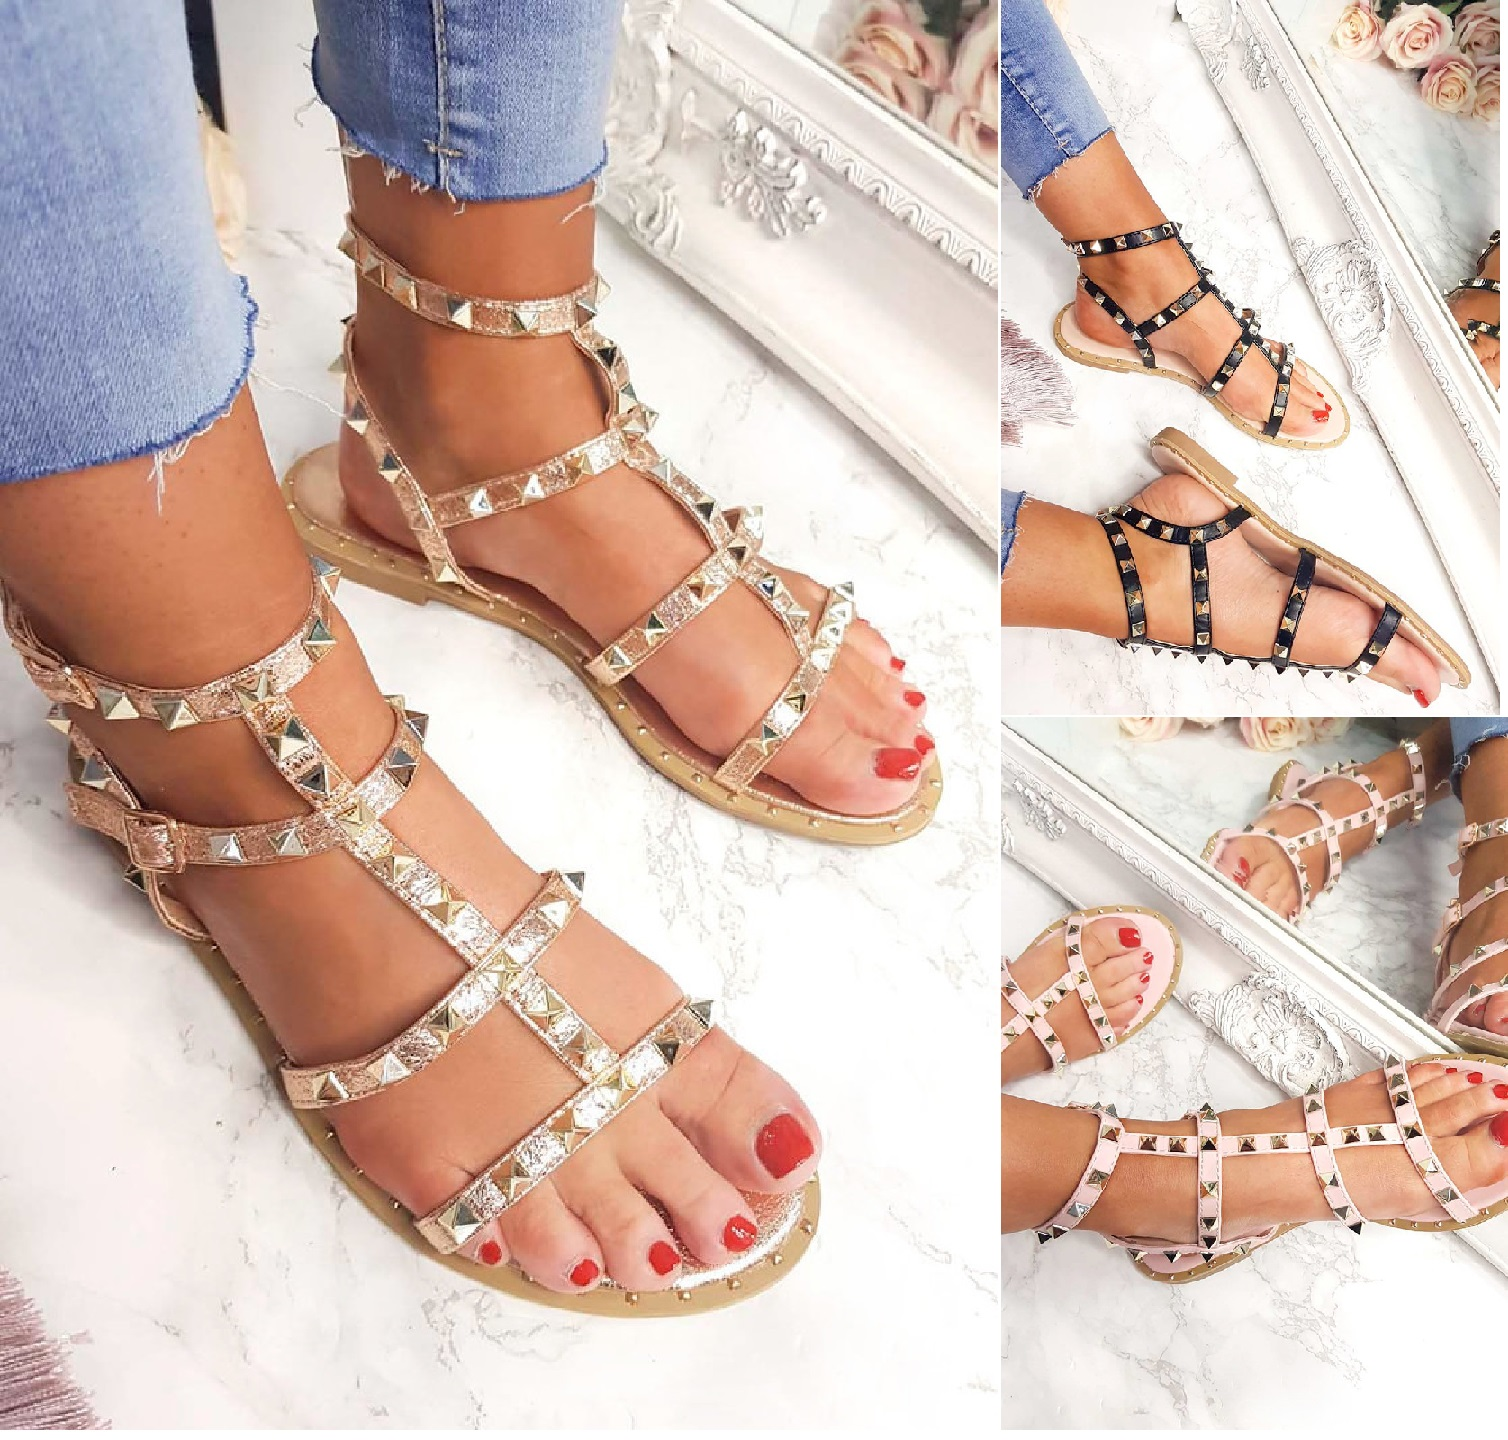 292af0d0a09ff Sentinel LADIES WOMENS STUDDED FLAT ANKLE BUCKLE STRAPPY SUMMER SANDALS  SHOES UK SIZE 3-8